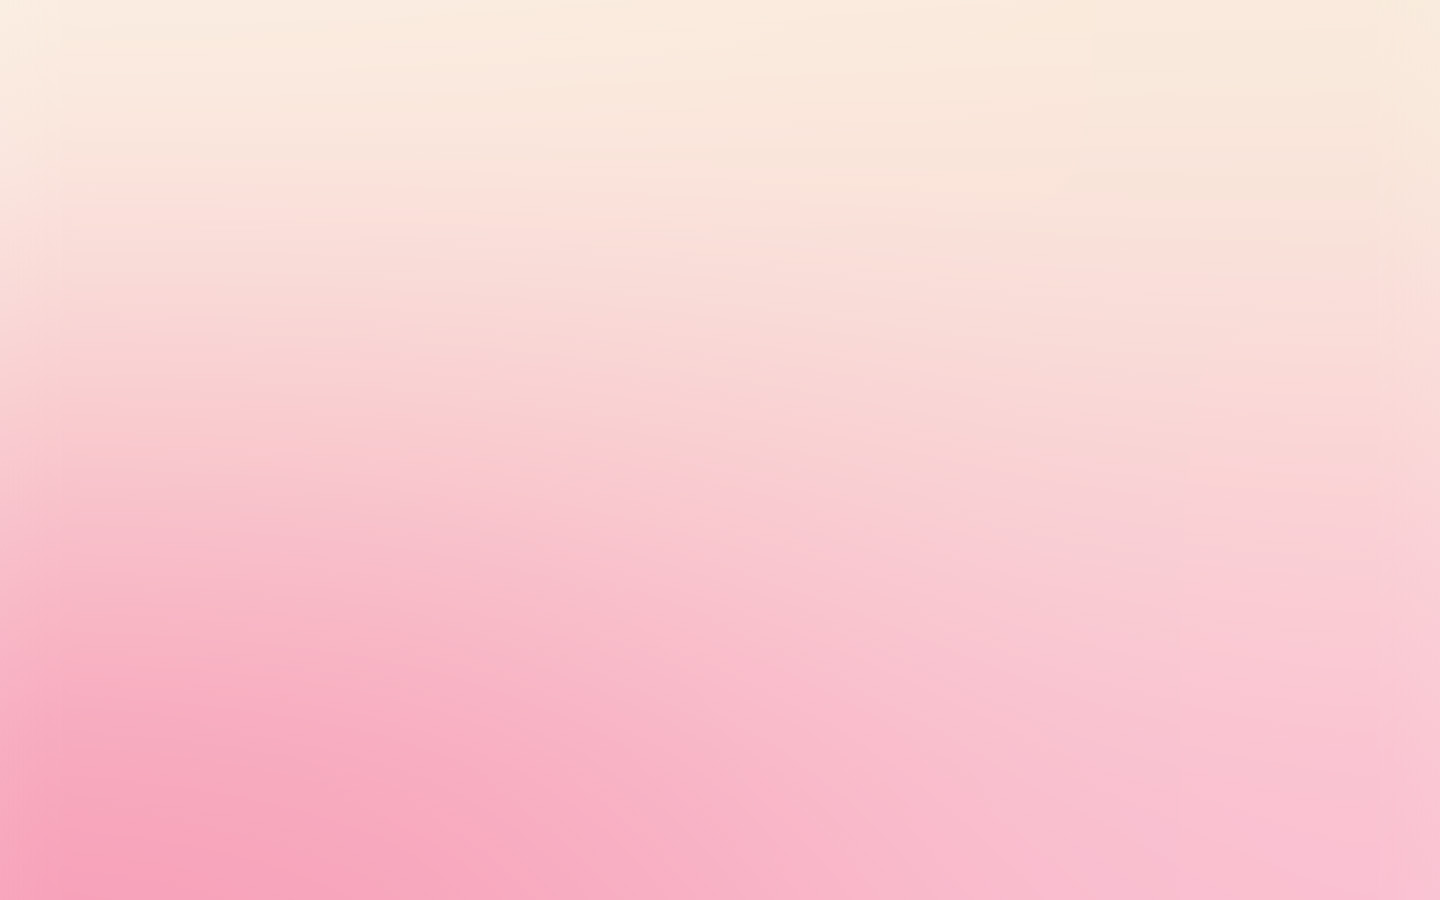 Sk12 Cute Pink Blur Gradation Wallpaper